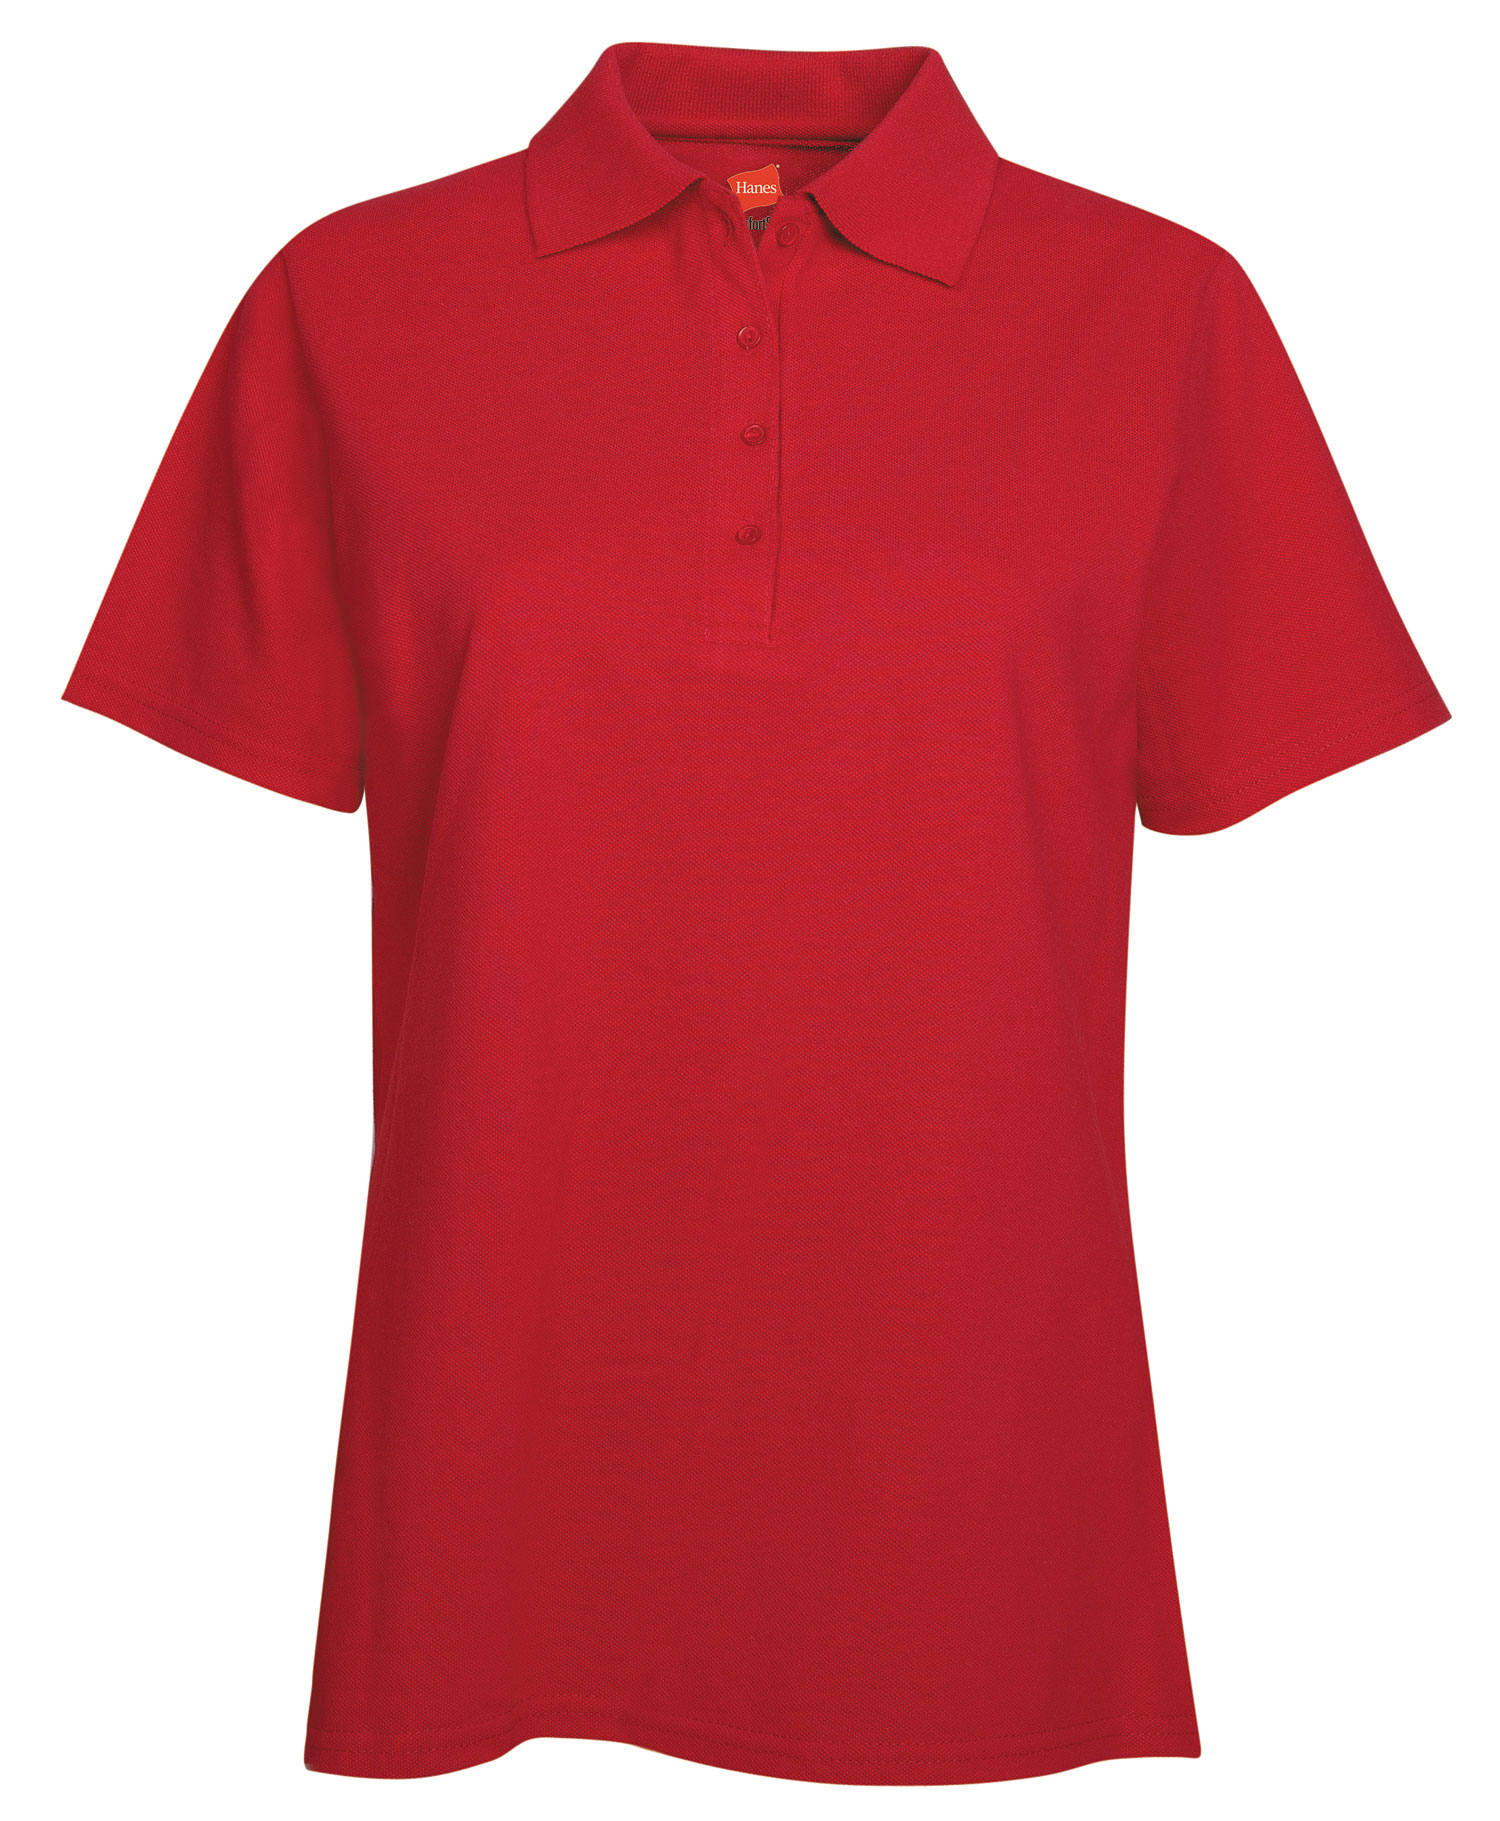 Hanes Ladies 7 oz. ComfortSoft® Cotton Piqué Polo